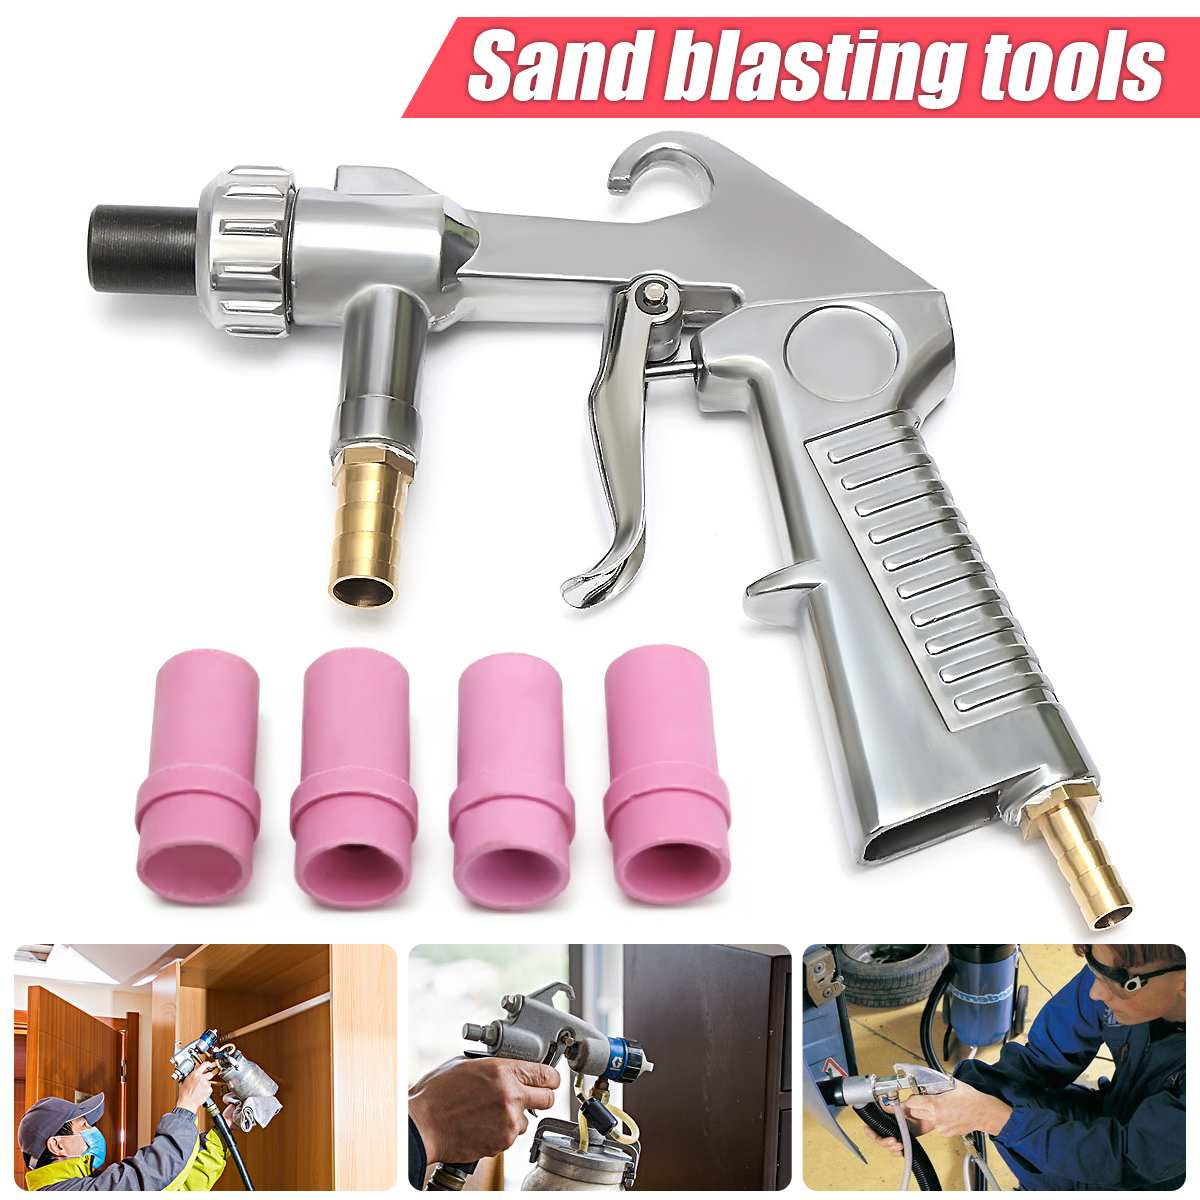 Sandblaster Air Siphon Feed Blast Nozzle Ceramic Tips Abrasive Sand Blasting with 4pcs Ceramic Nozzles AbrasiveSandblaster Air Siphon Feed Blast Nozzle Ceramic Tips Abrasive Sand Blasting with 4pcs Ceramic Nozzles Abrasive